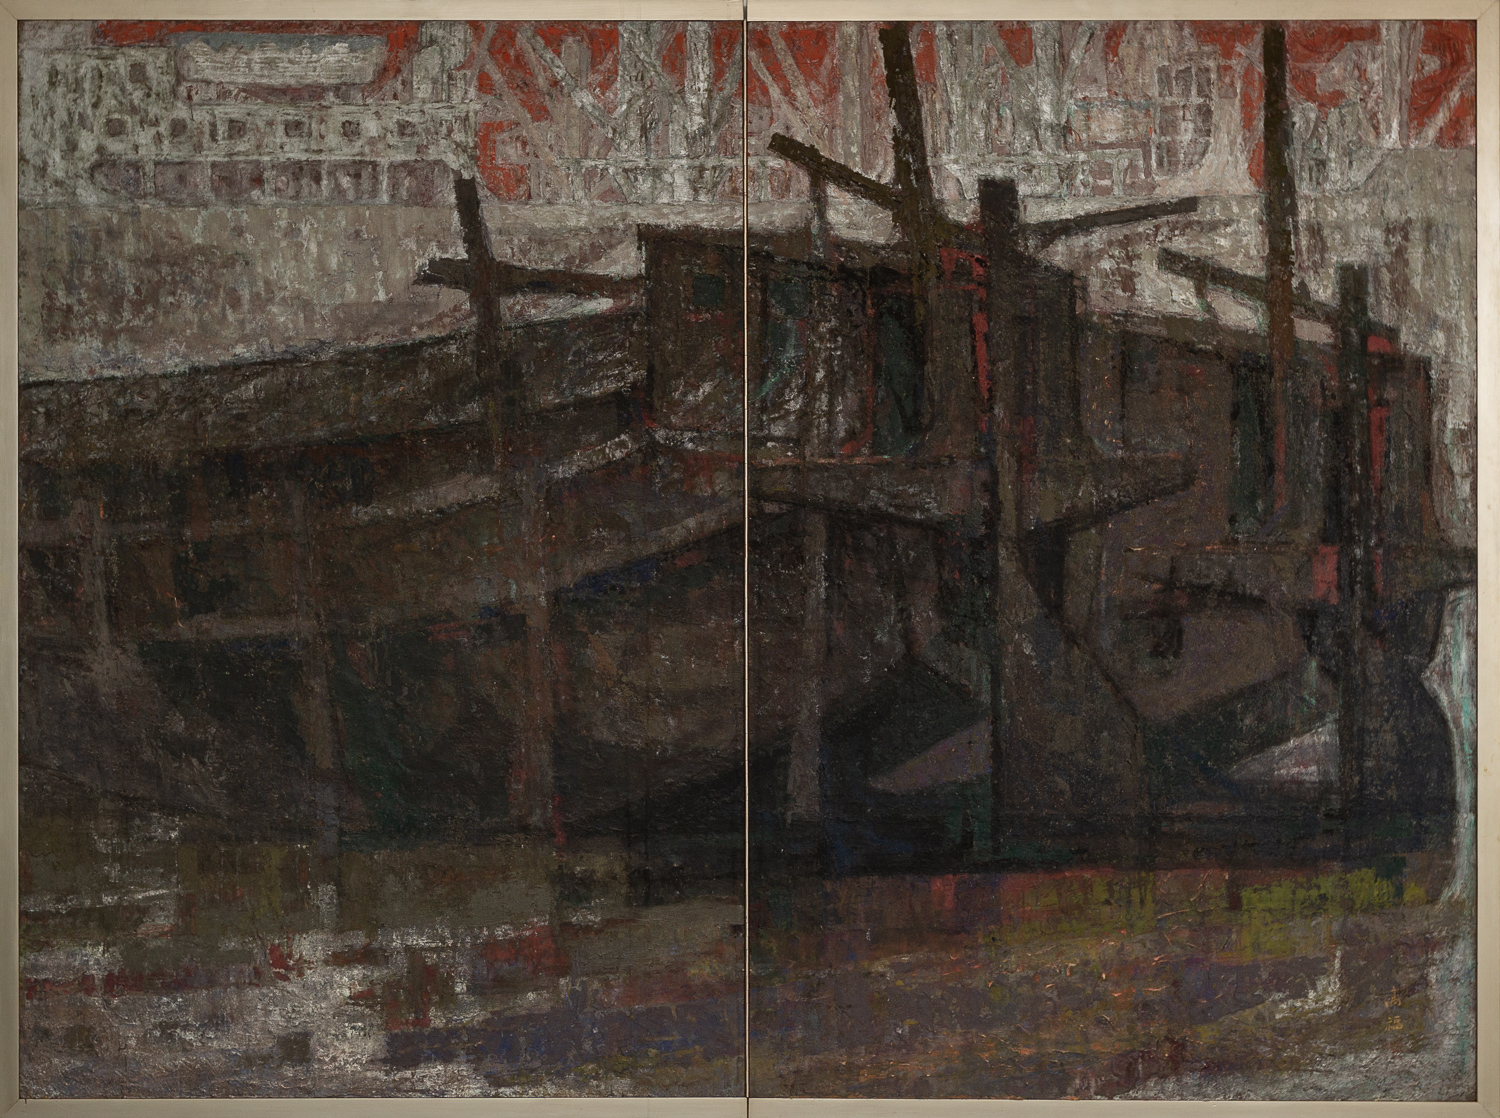 Japanese Two Panel Screen: Harbor Scene in Abstract Form